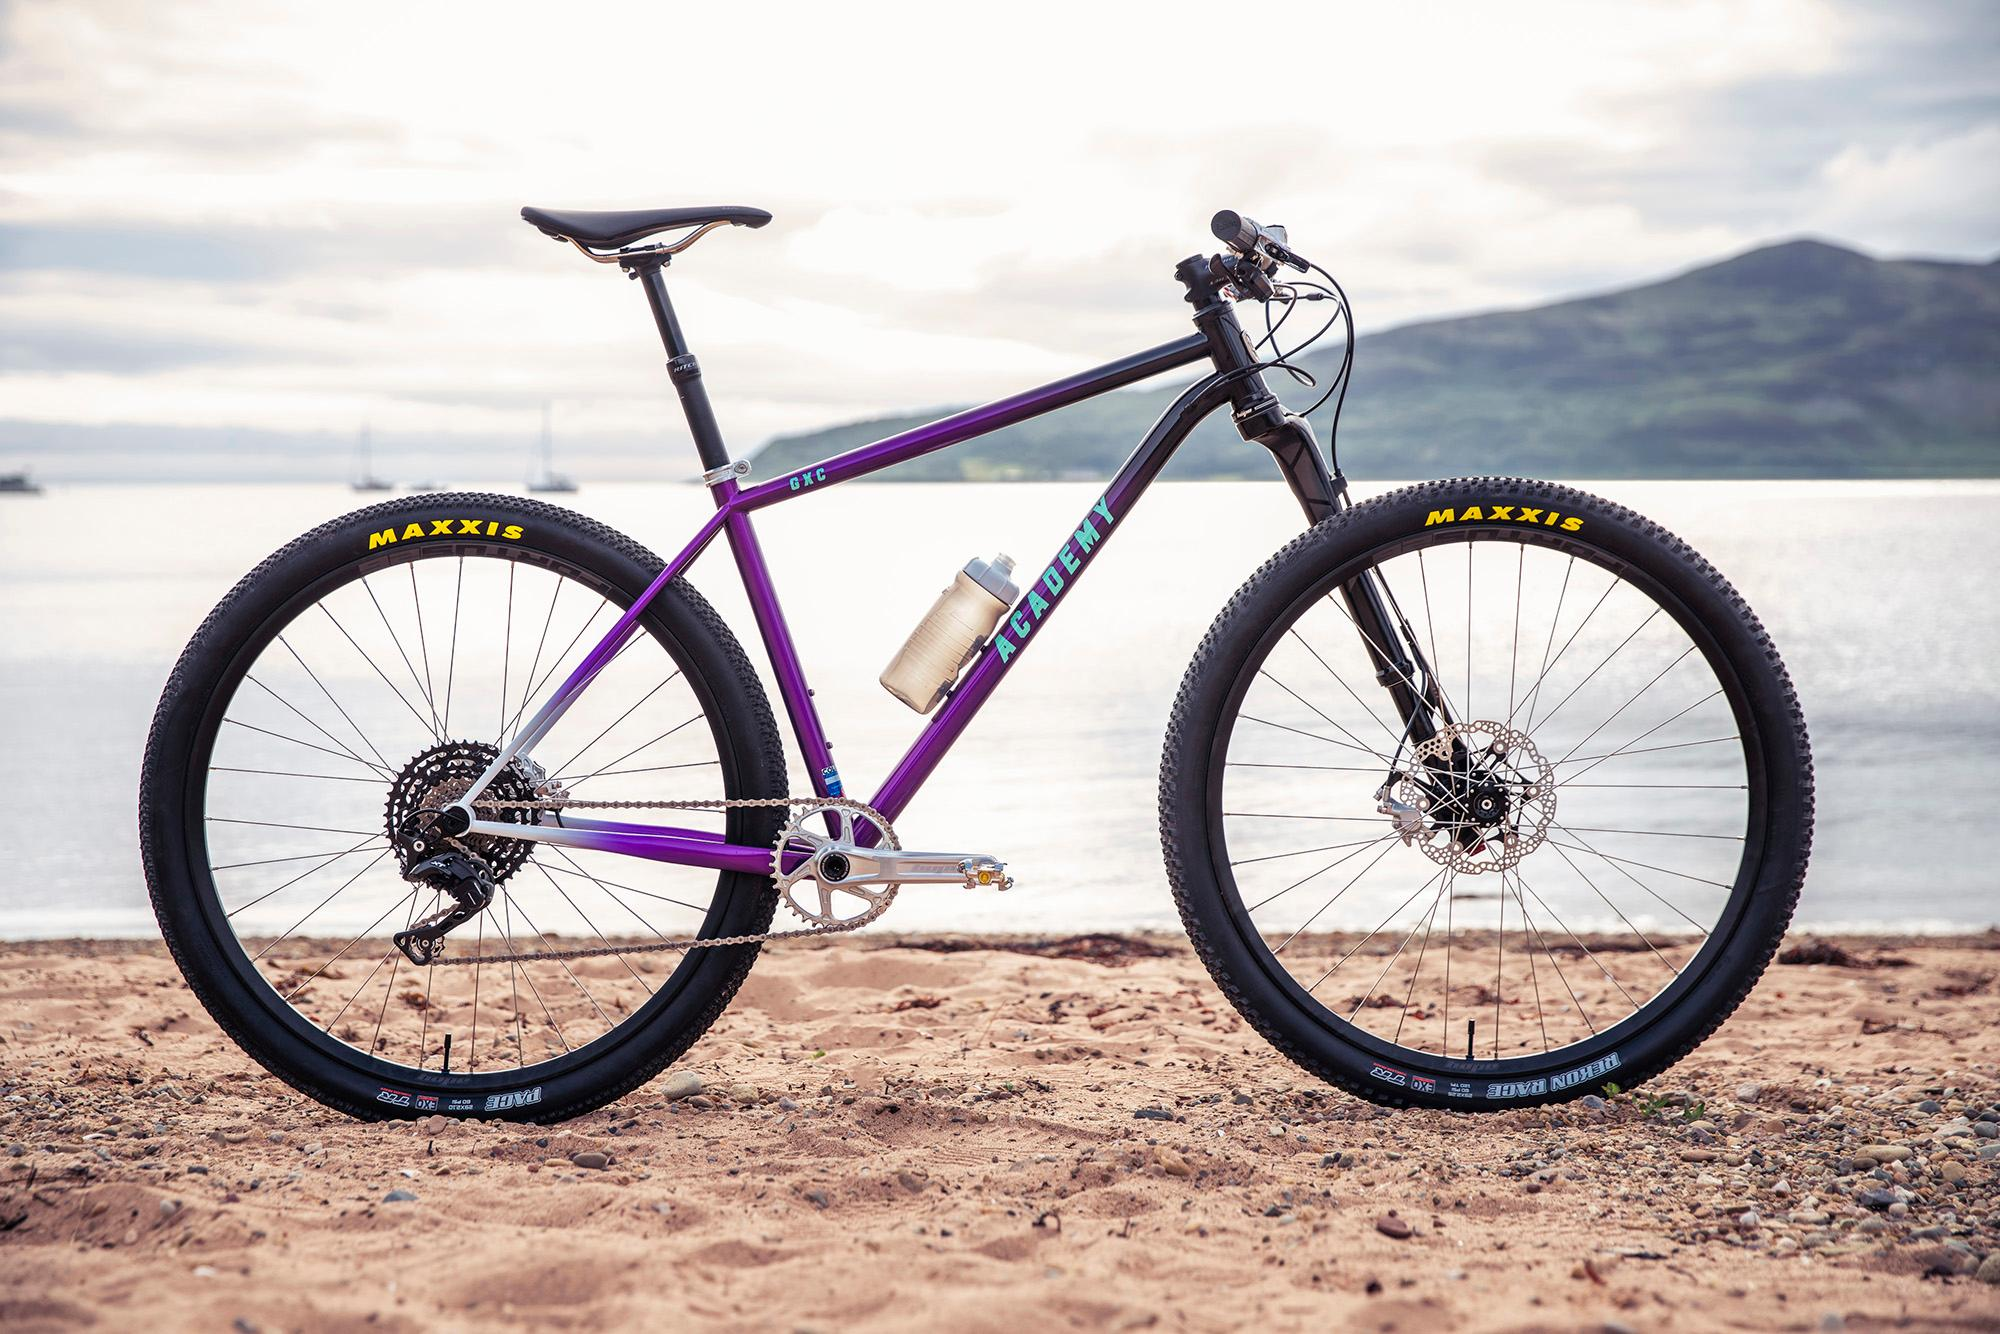 Grinduro GXC custom build by The Bicycle Academy.Grinduro, Isle of Arran, Scotland, 13 July 2019